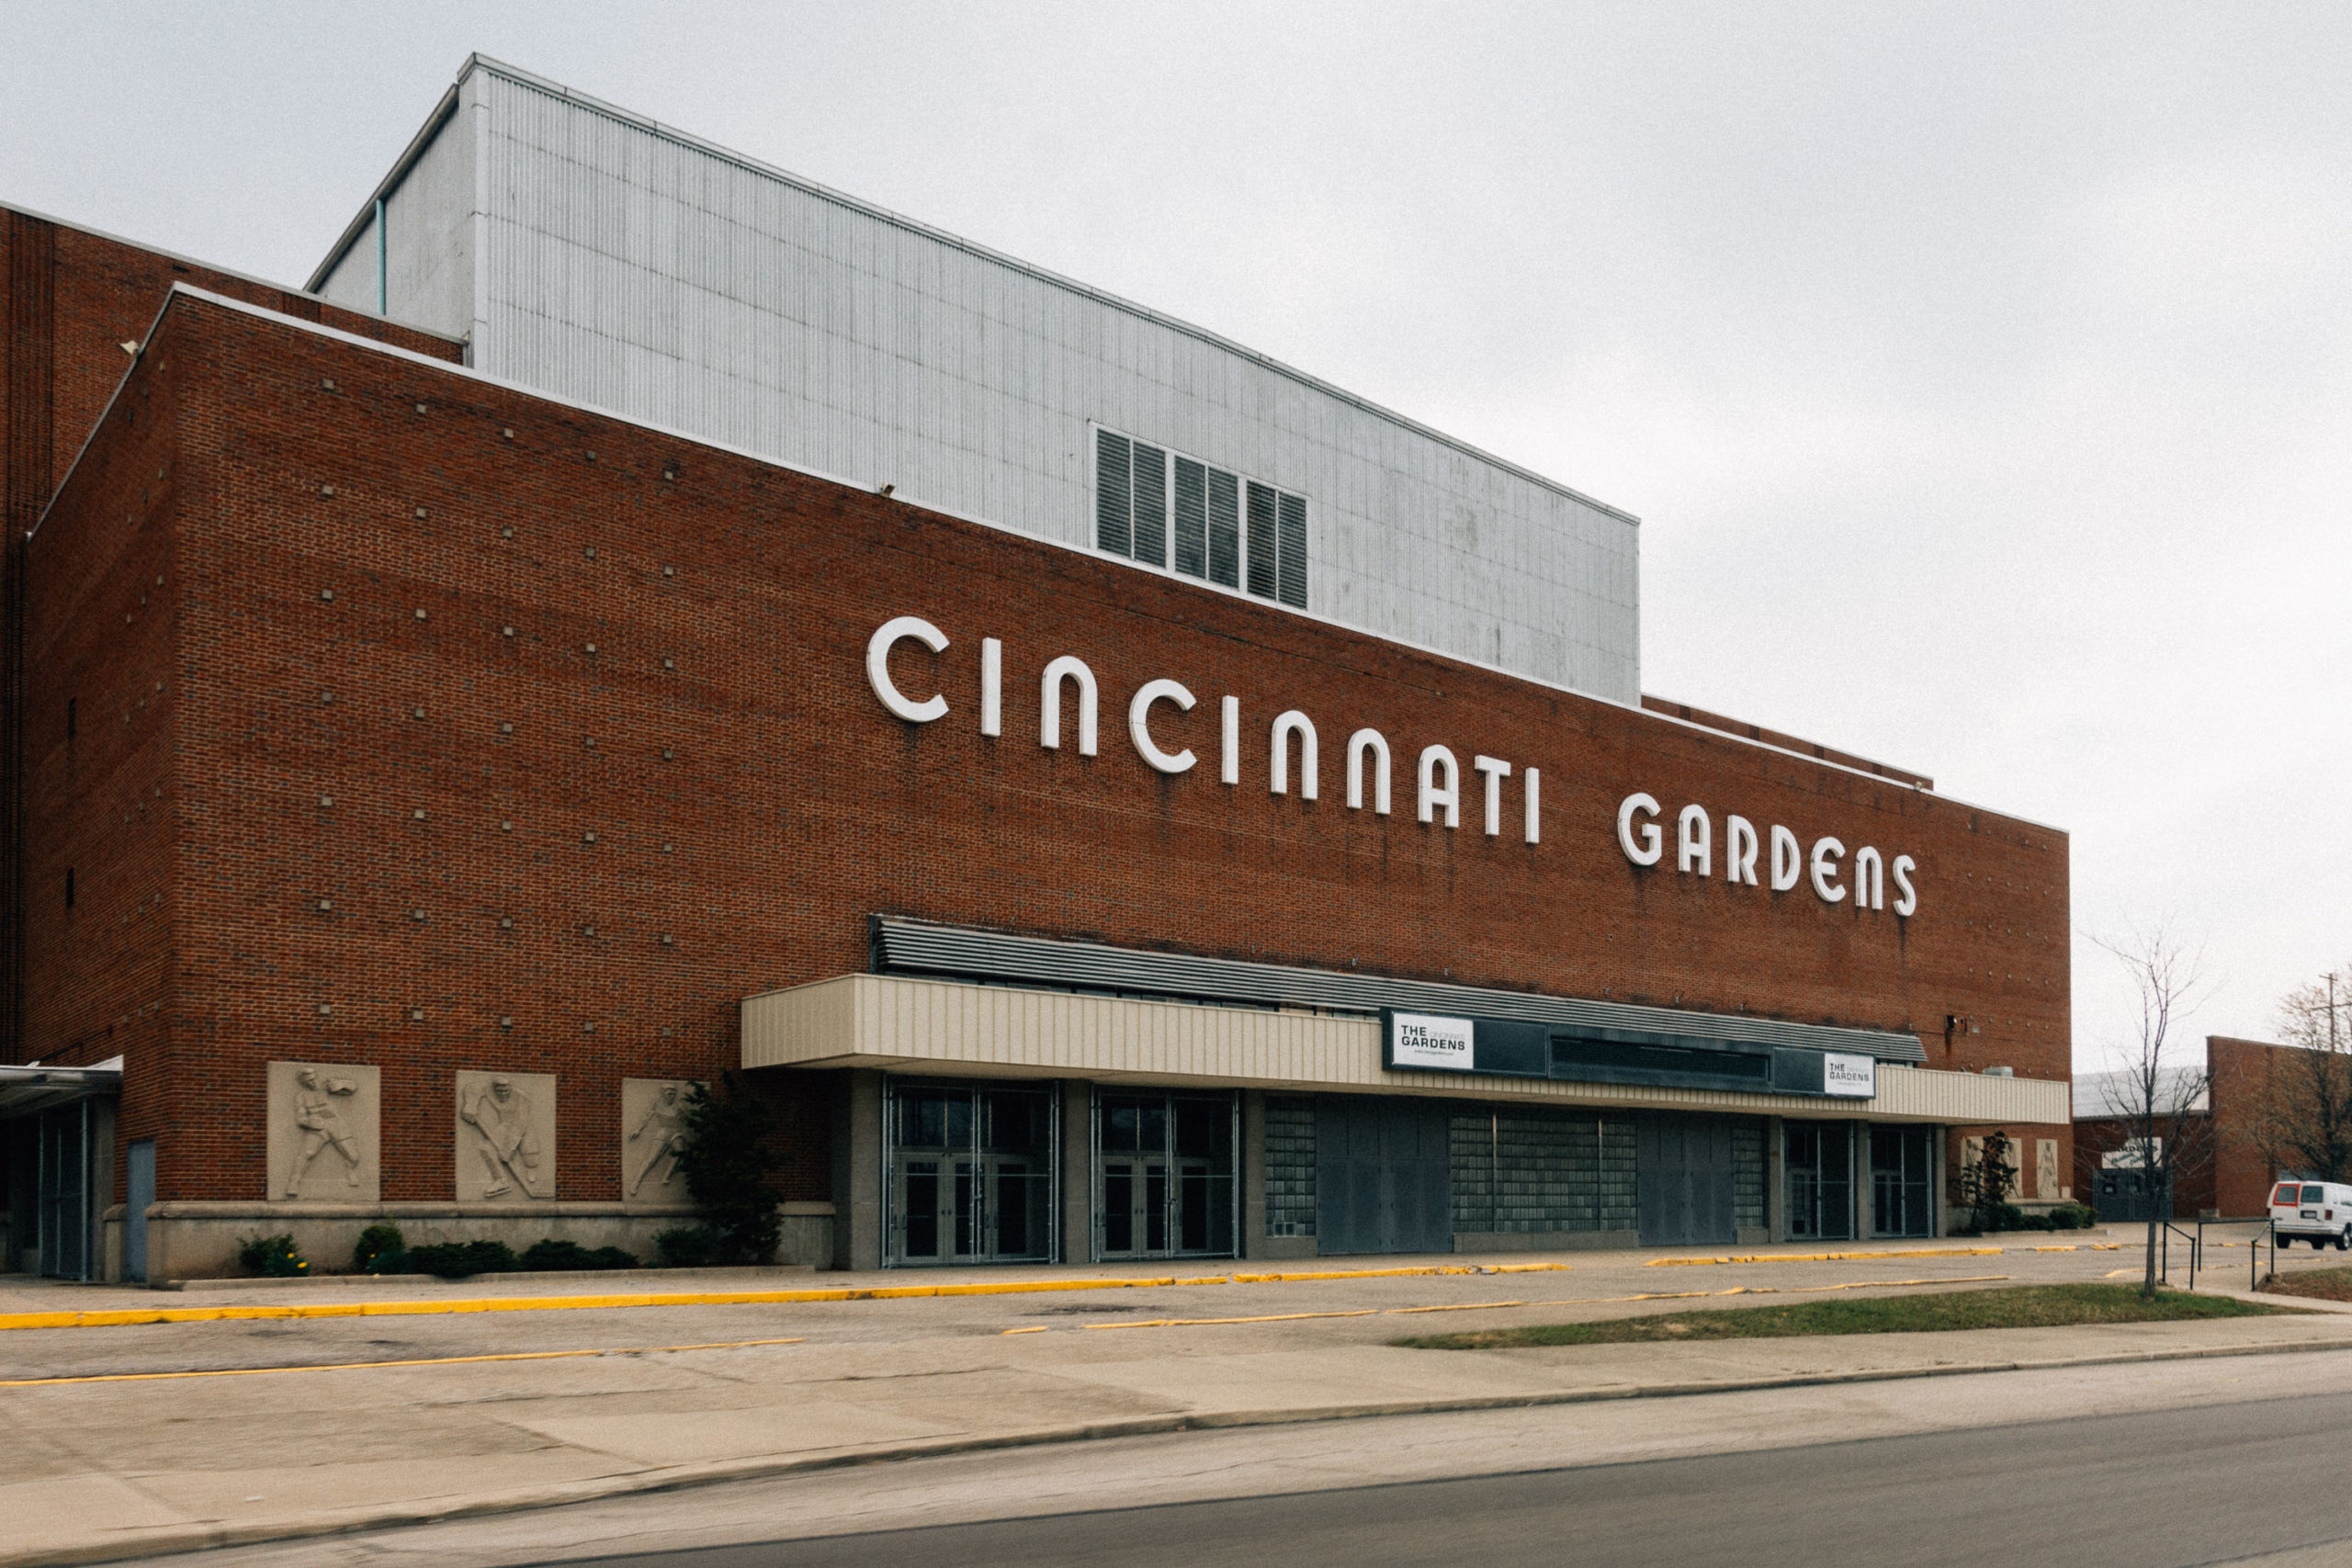 An old arena made of brick